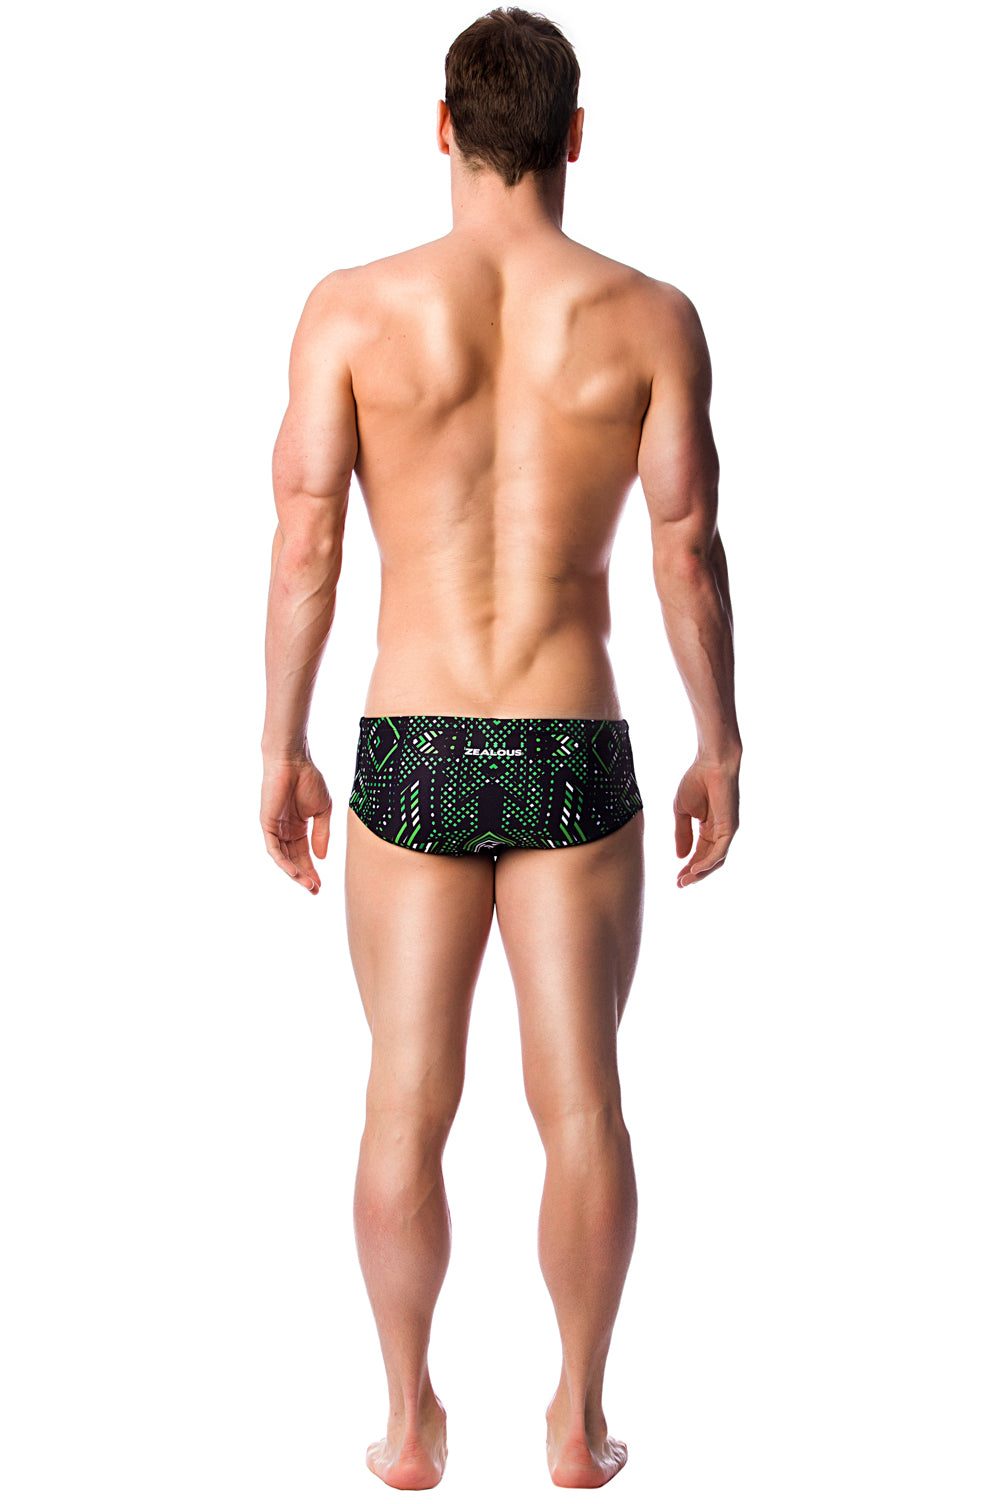 Aztec Warrior - Mens L Only Men's Briefs - Shop Zealous Training Swimwear